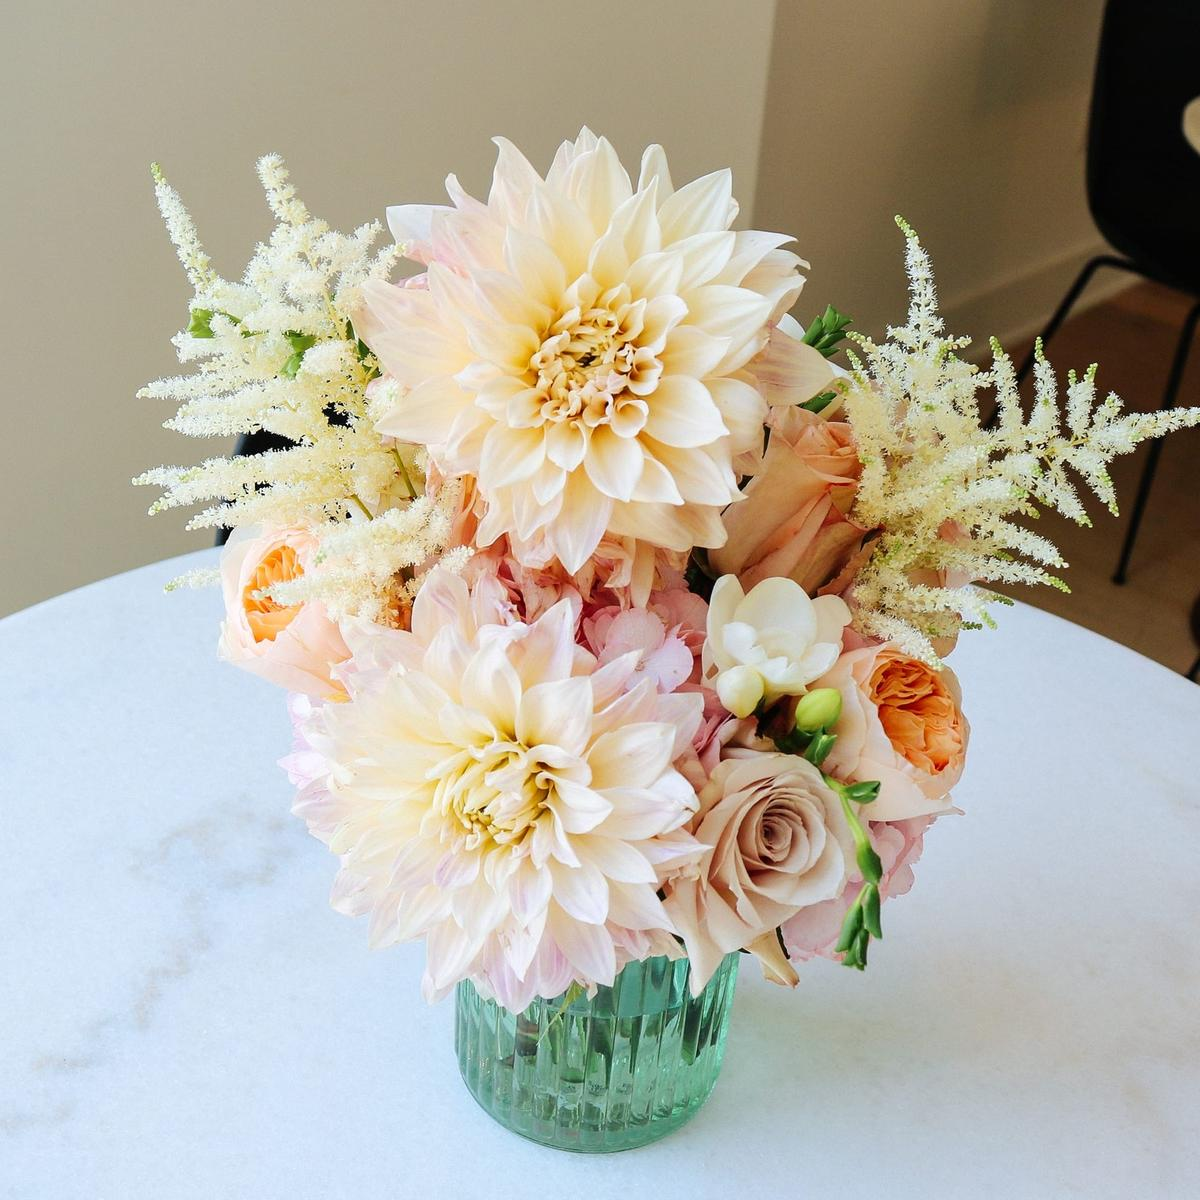 bloomie_new_york_florist_dahlias